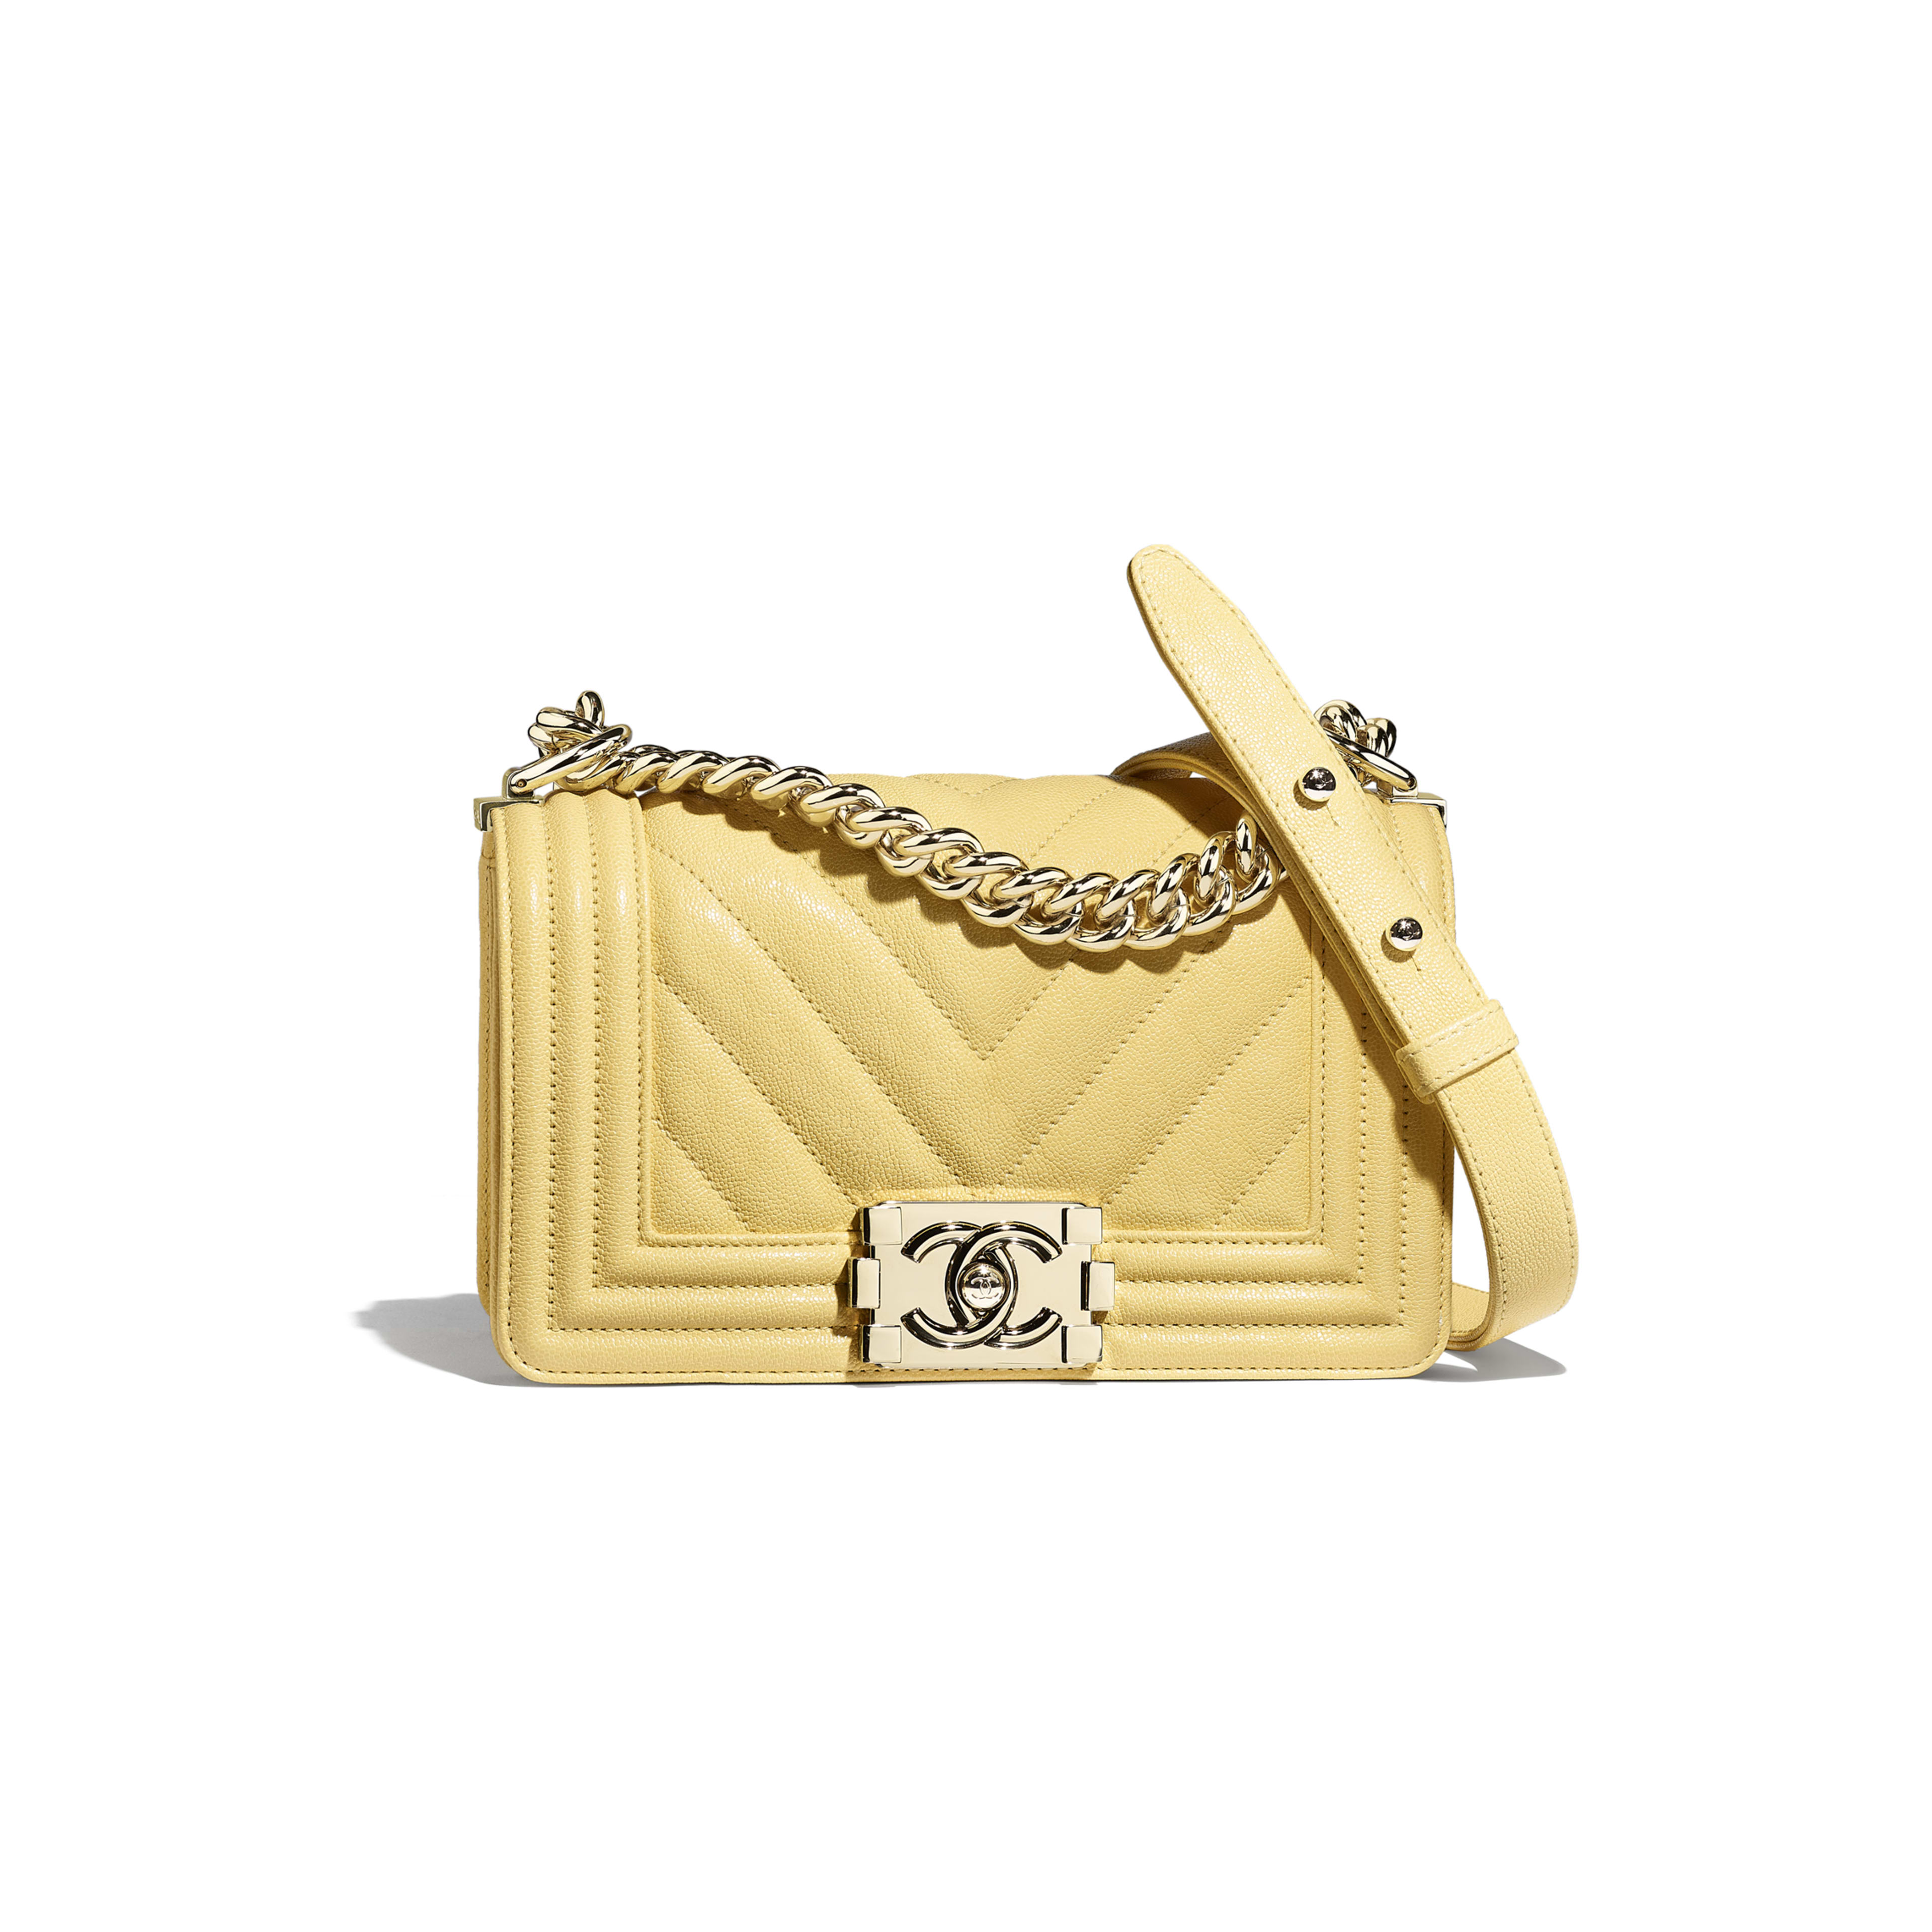 Small BOY CHANEL Handbag - Yellow - Grained Calfskin & Gold-Tone Metal - Default view - see full sized version